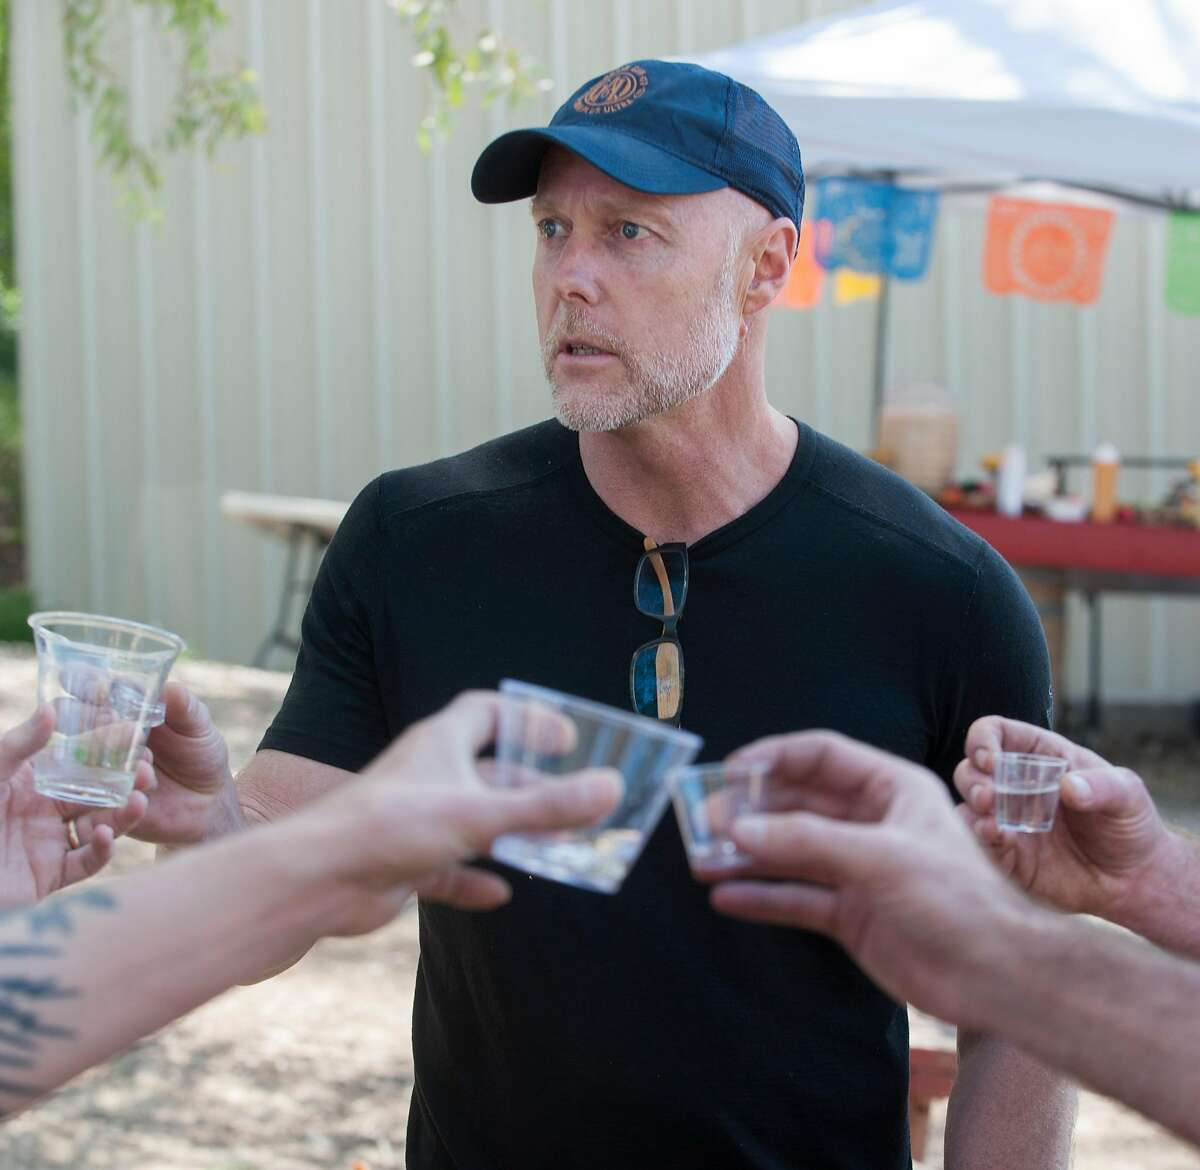 Lance Winters, head distiller for St. George Spirits, toasts with friends while tasting mezcal at an agave event in Woodland. The Mezcalifornia group gathered at an agave farm in Woodland for an event to post the agave - the first step in the production of mezcal - on Sunday, April 14, 2019. Mezcalifornia hopes to be California's first agave distillate.